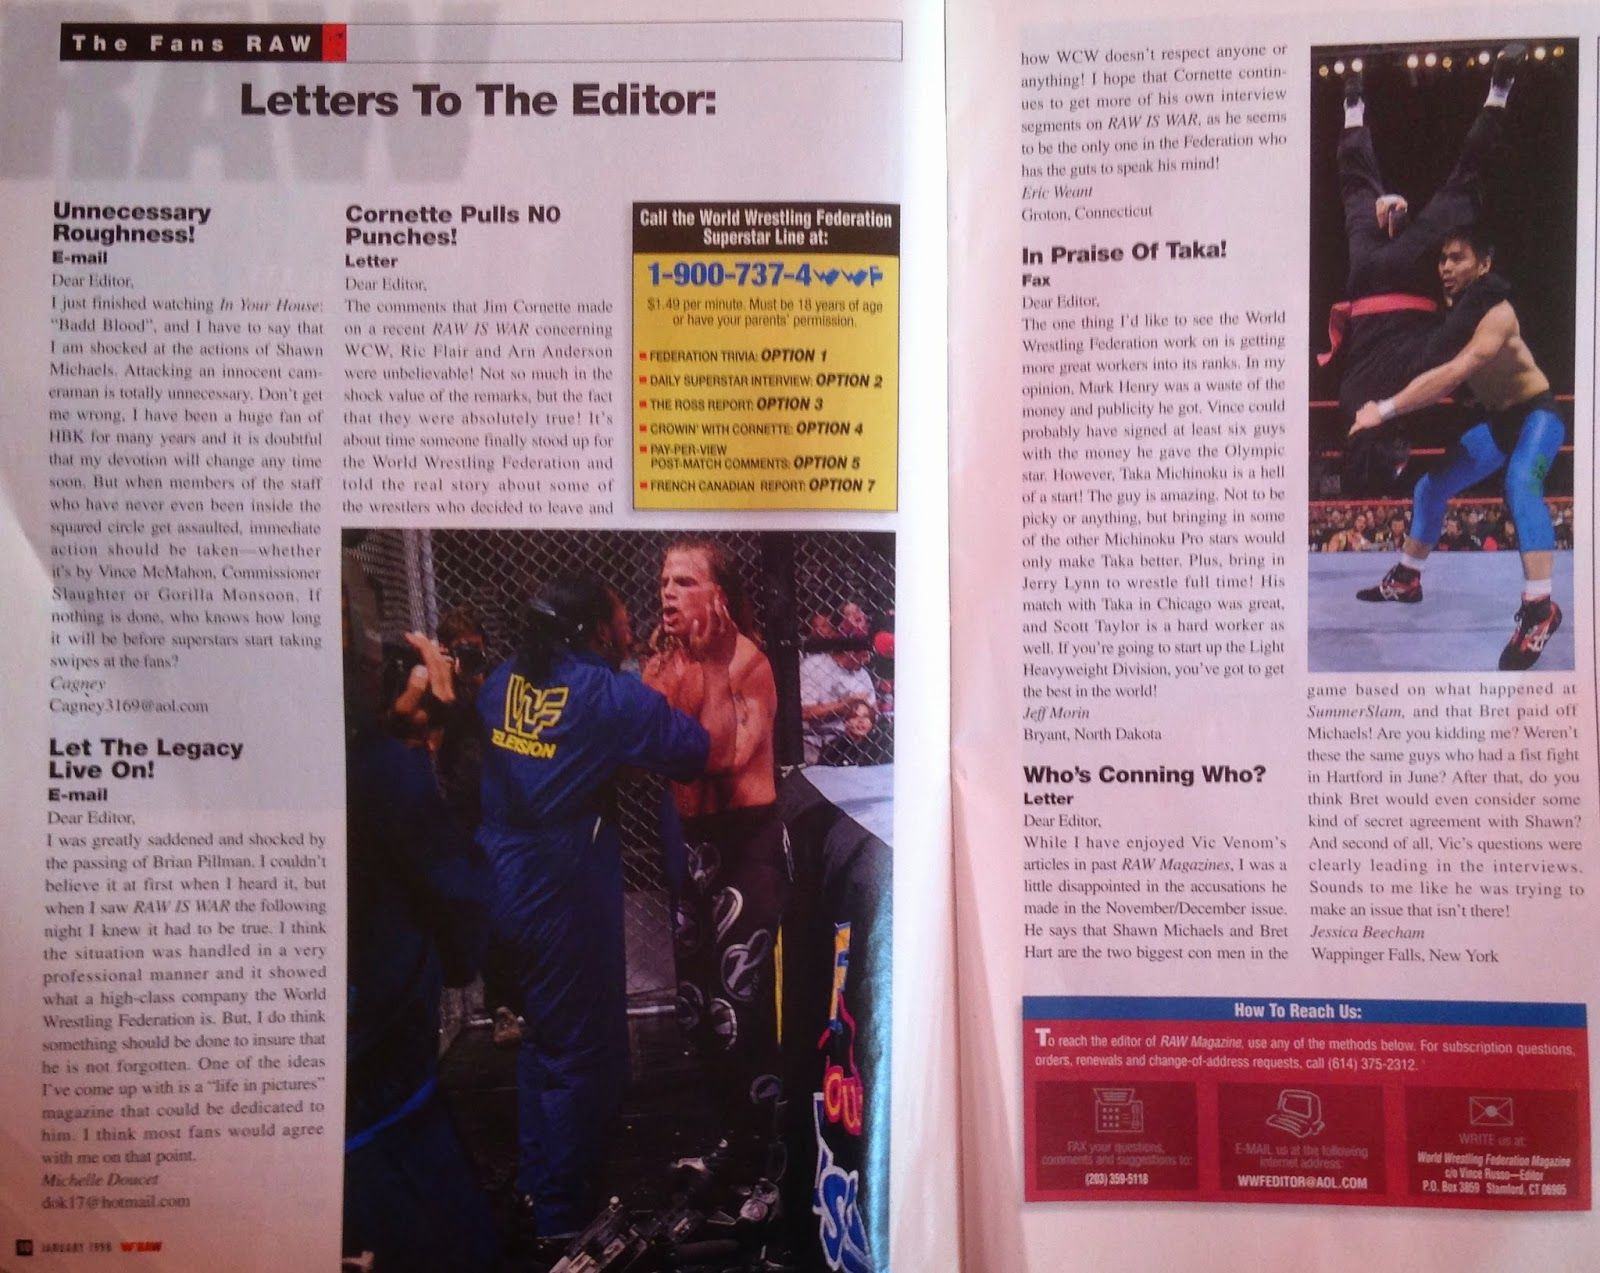 Pro Wrestling Reviews: From the loft: WWF Magazine